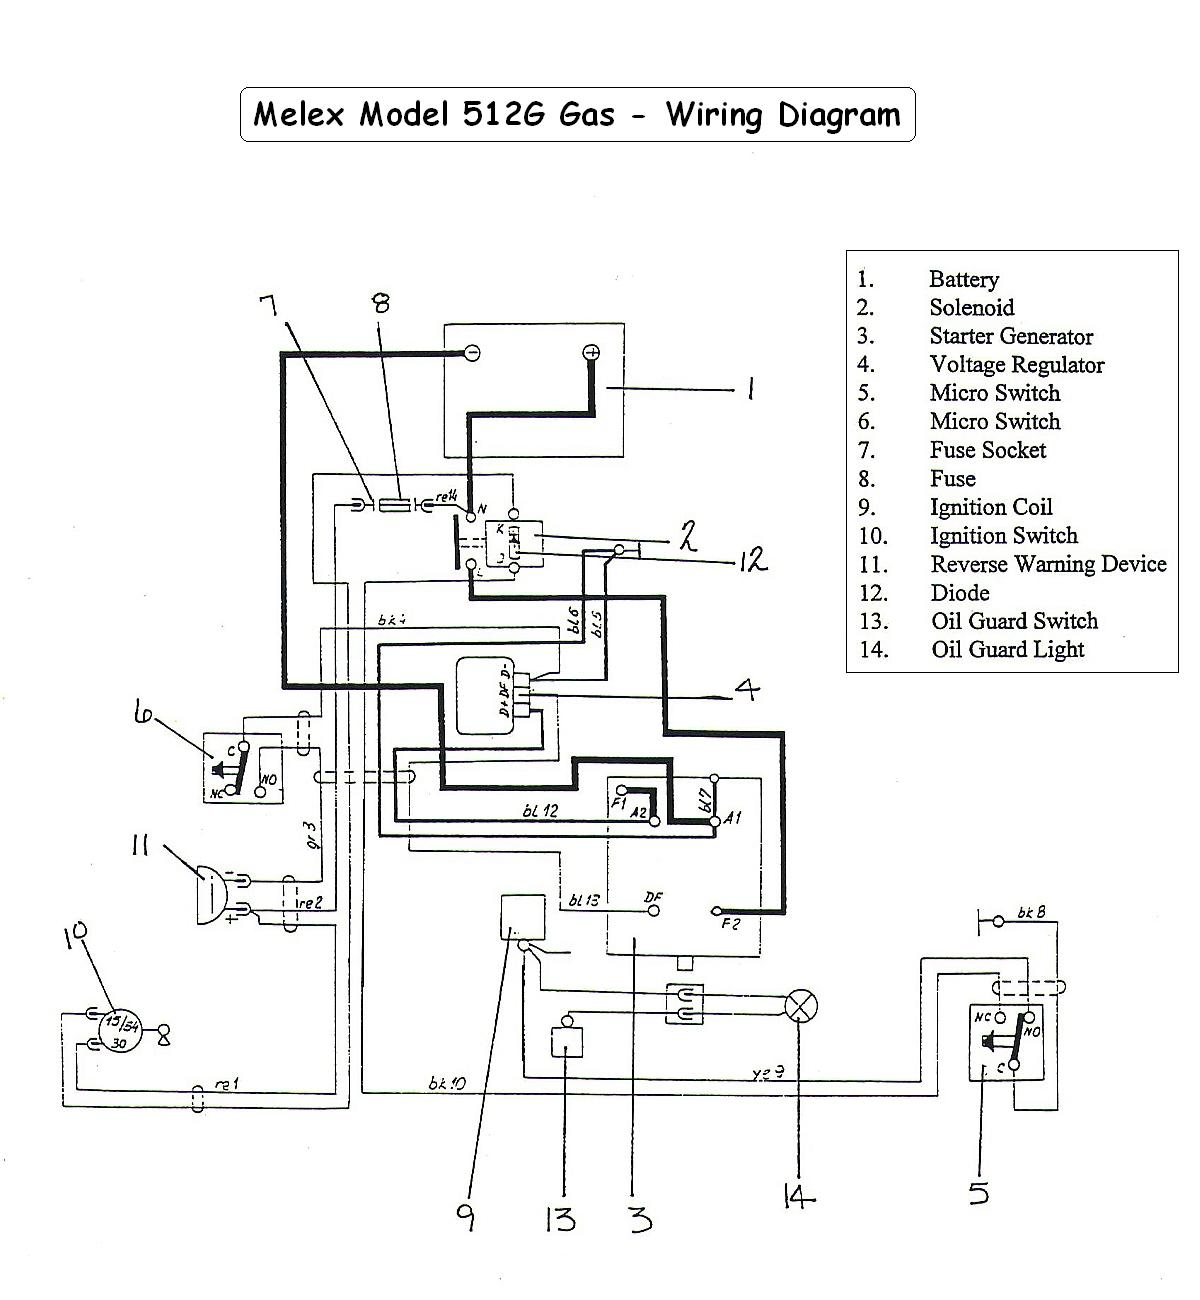 hight resolution of melex solenoid wiring diagram wiring diagram melex 252 wiring diagrams melex wiring diagram source melex golf cart wiring diagram 9 hp